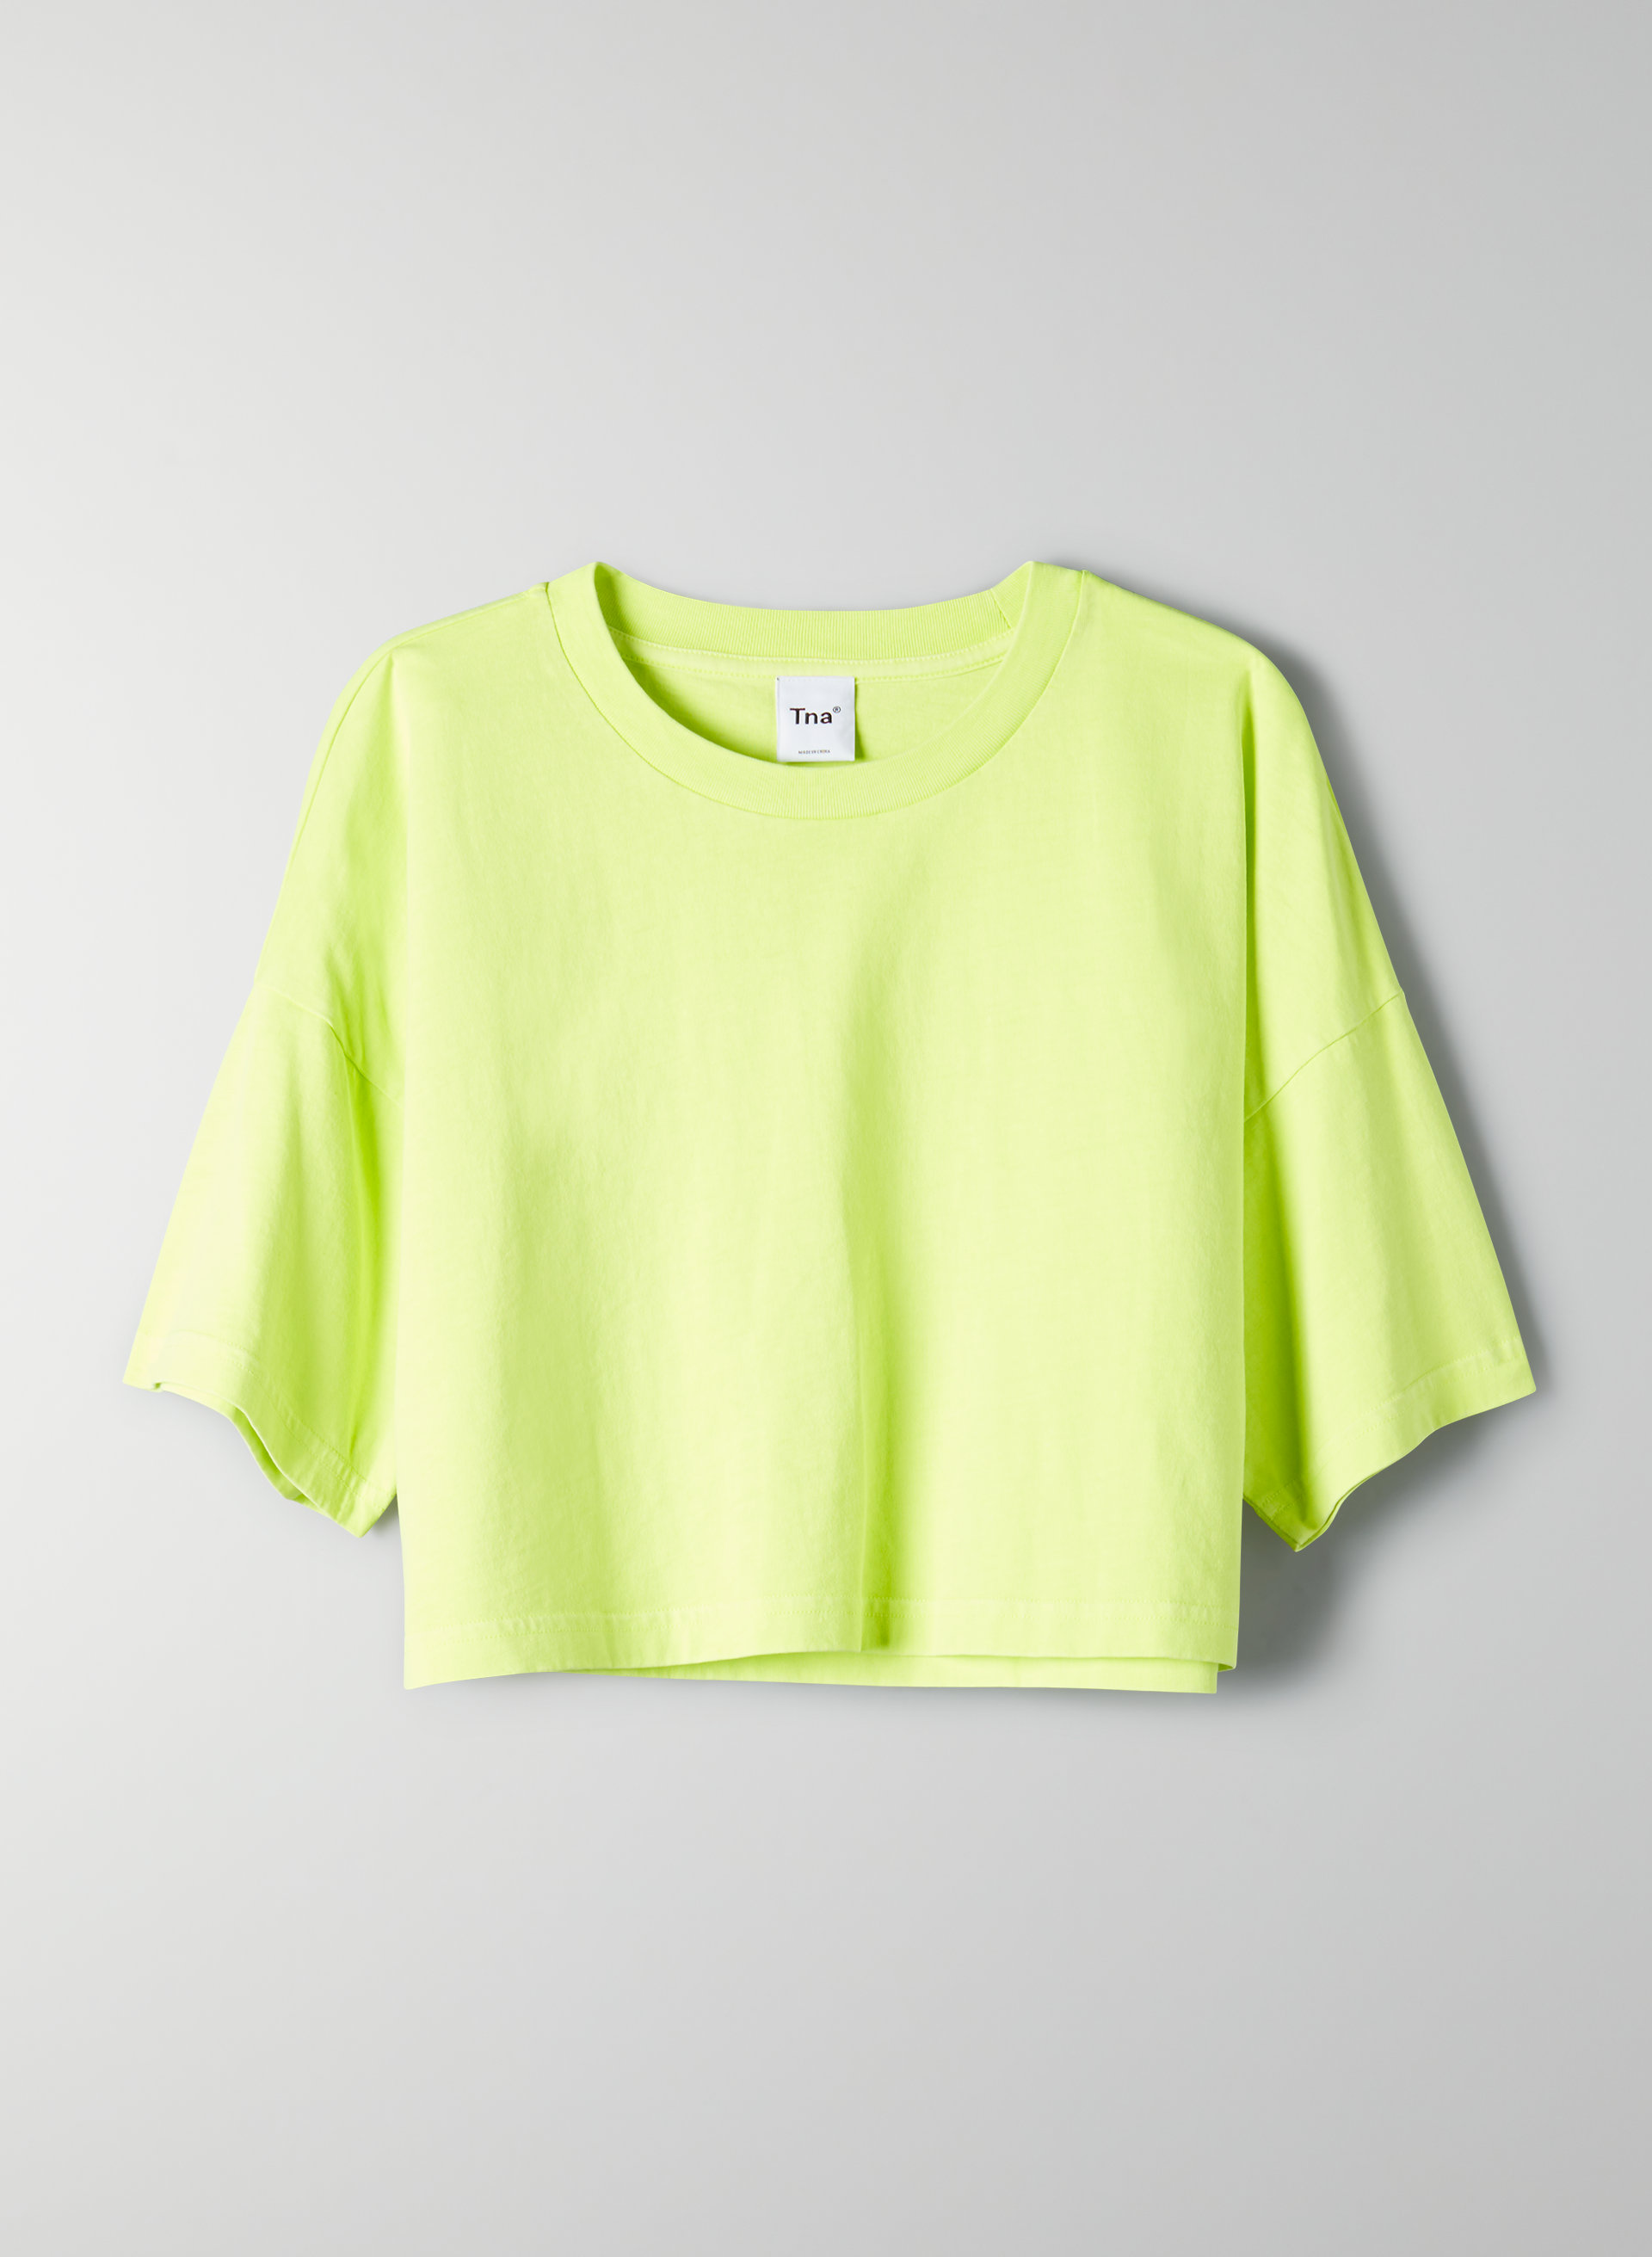 957eec97ae3d6 DITMAS CROPPED TOP - Cropped, boxy t-shirt. Styled with new balance ...